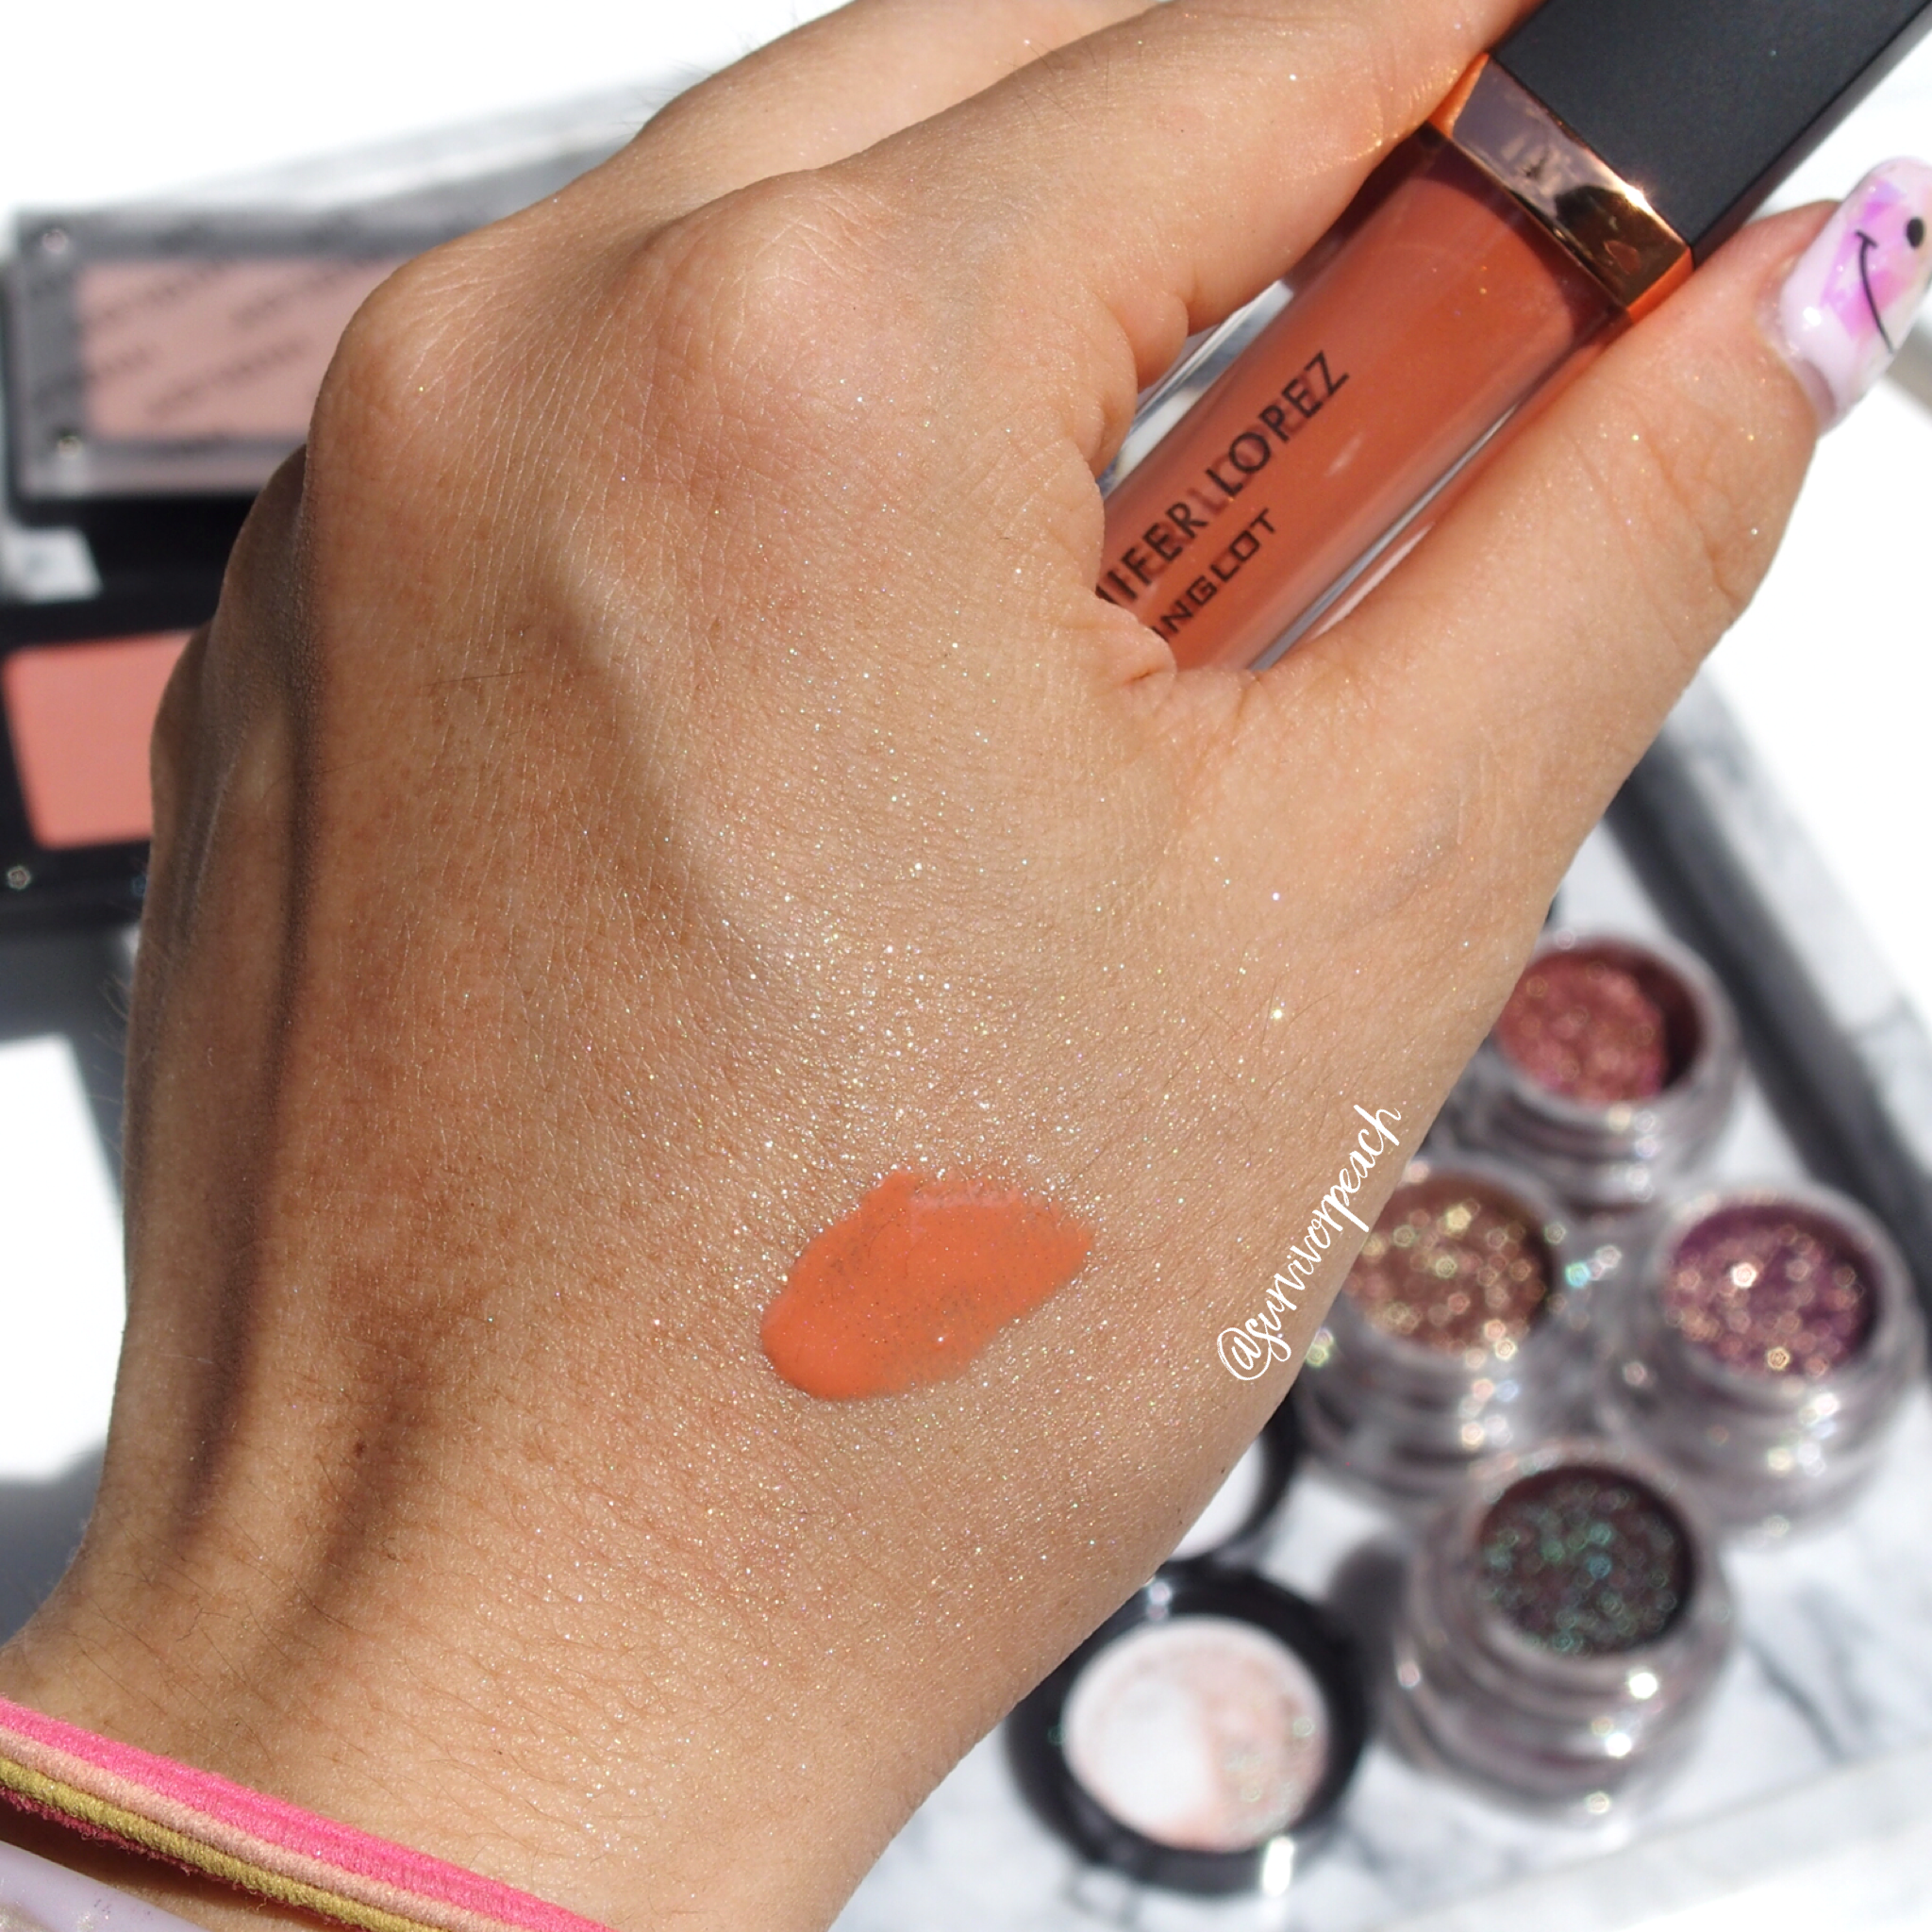 Inglot JLo collab Lip Glossy Lip Gloss in shade Peach Pearl swatch